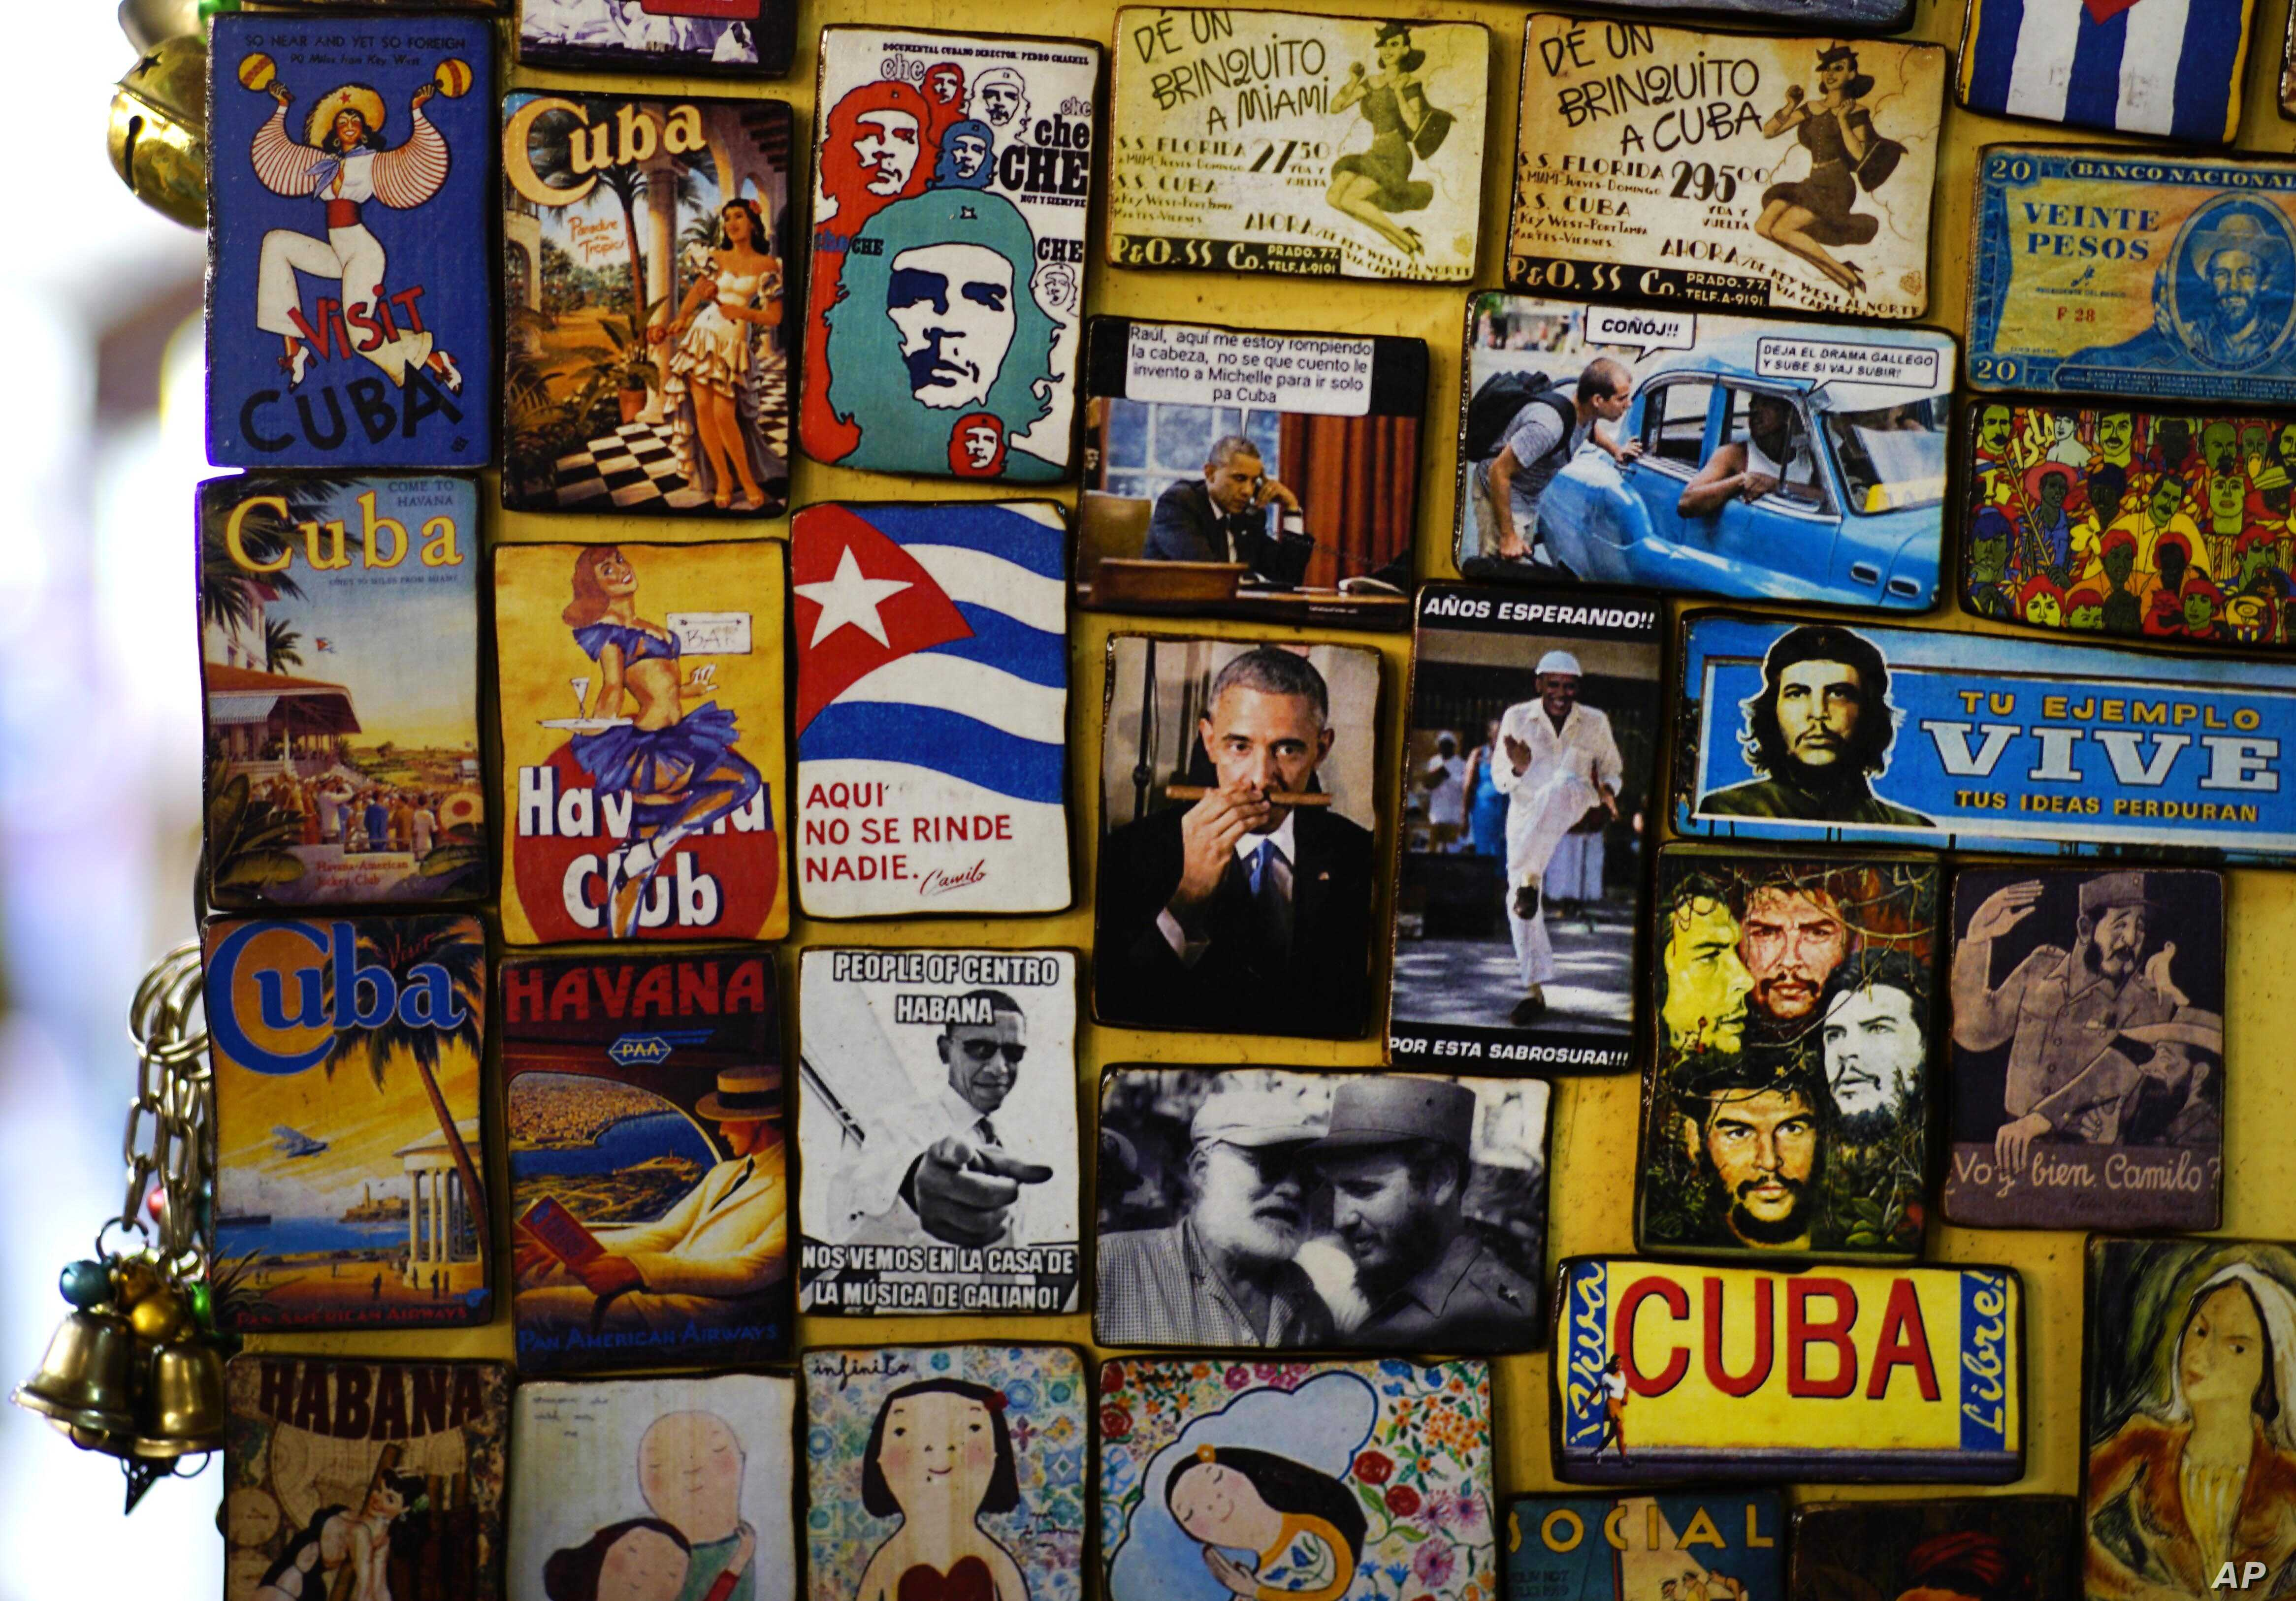 Refrigerator magnets are displayed for sale in a tourist shop, several showing images of U.S. President Barack Obama, at a market in Havana, Cuba, March 14, 2016. Obama will travel to Cuba on March 20.